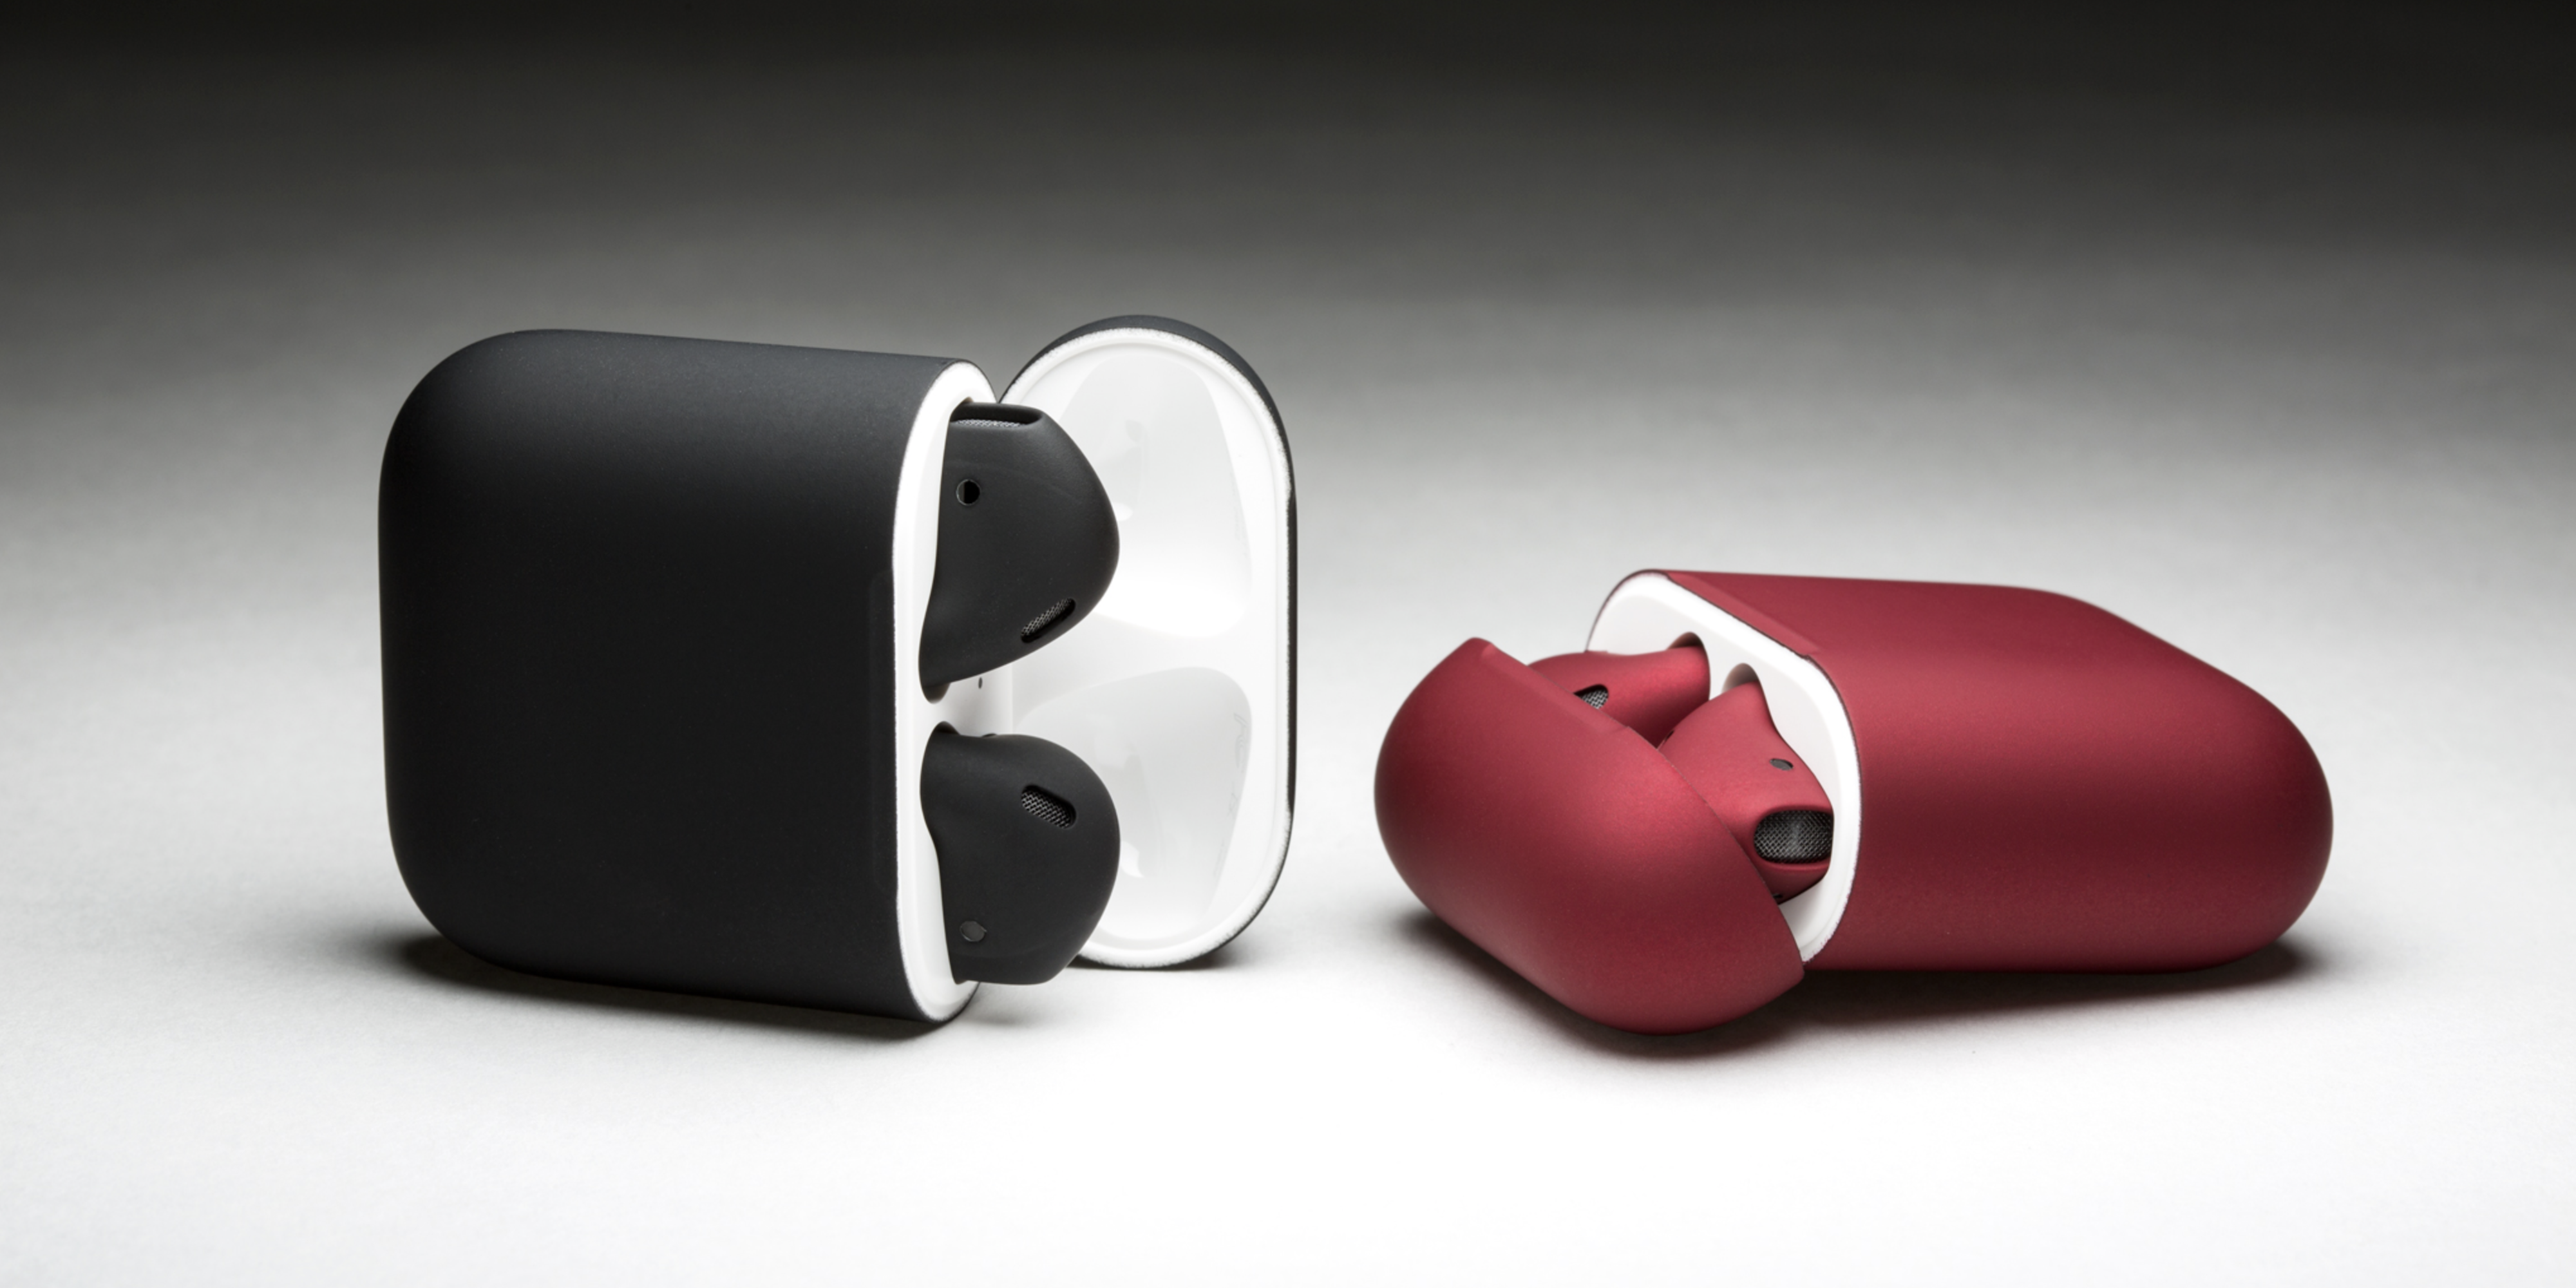 9to5Rewards: Customize a pair of Apple AirPods from